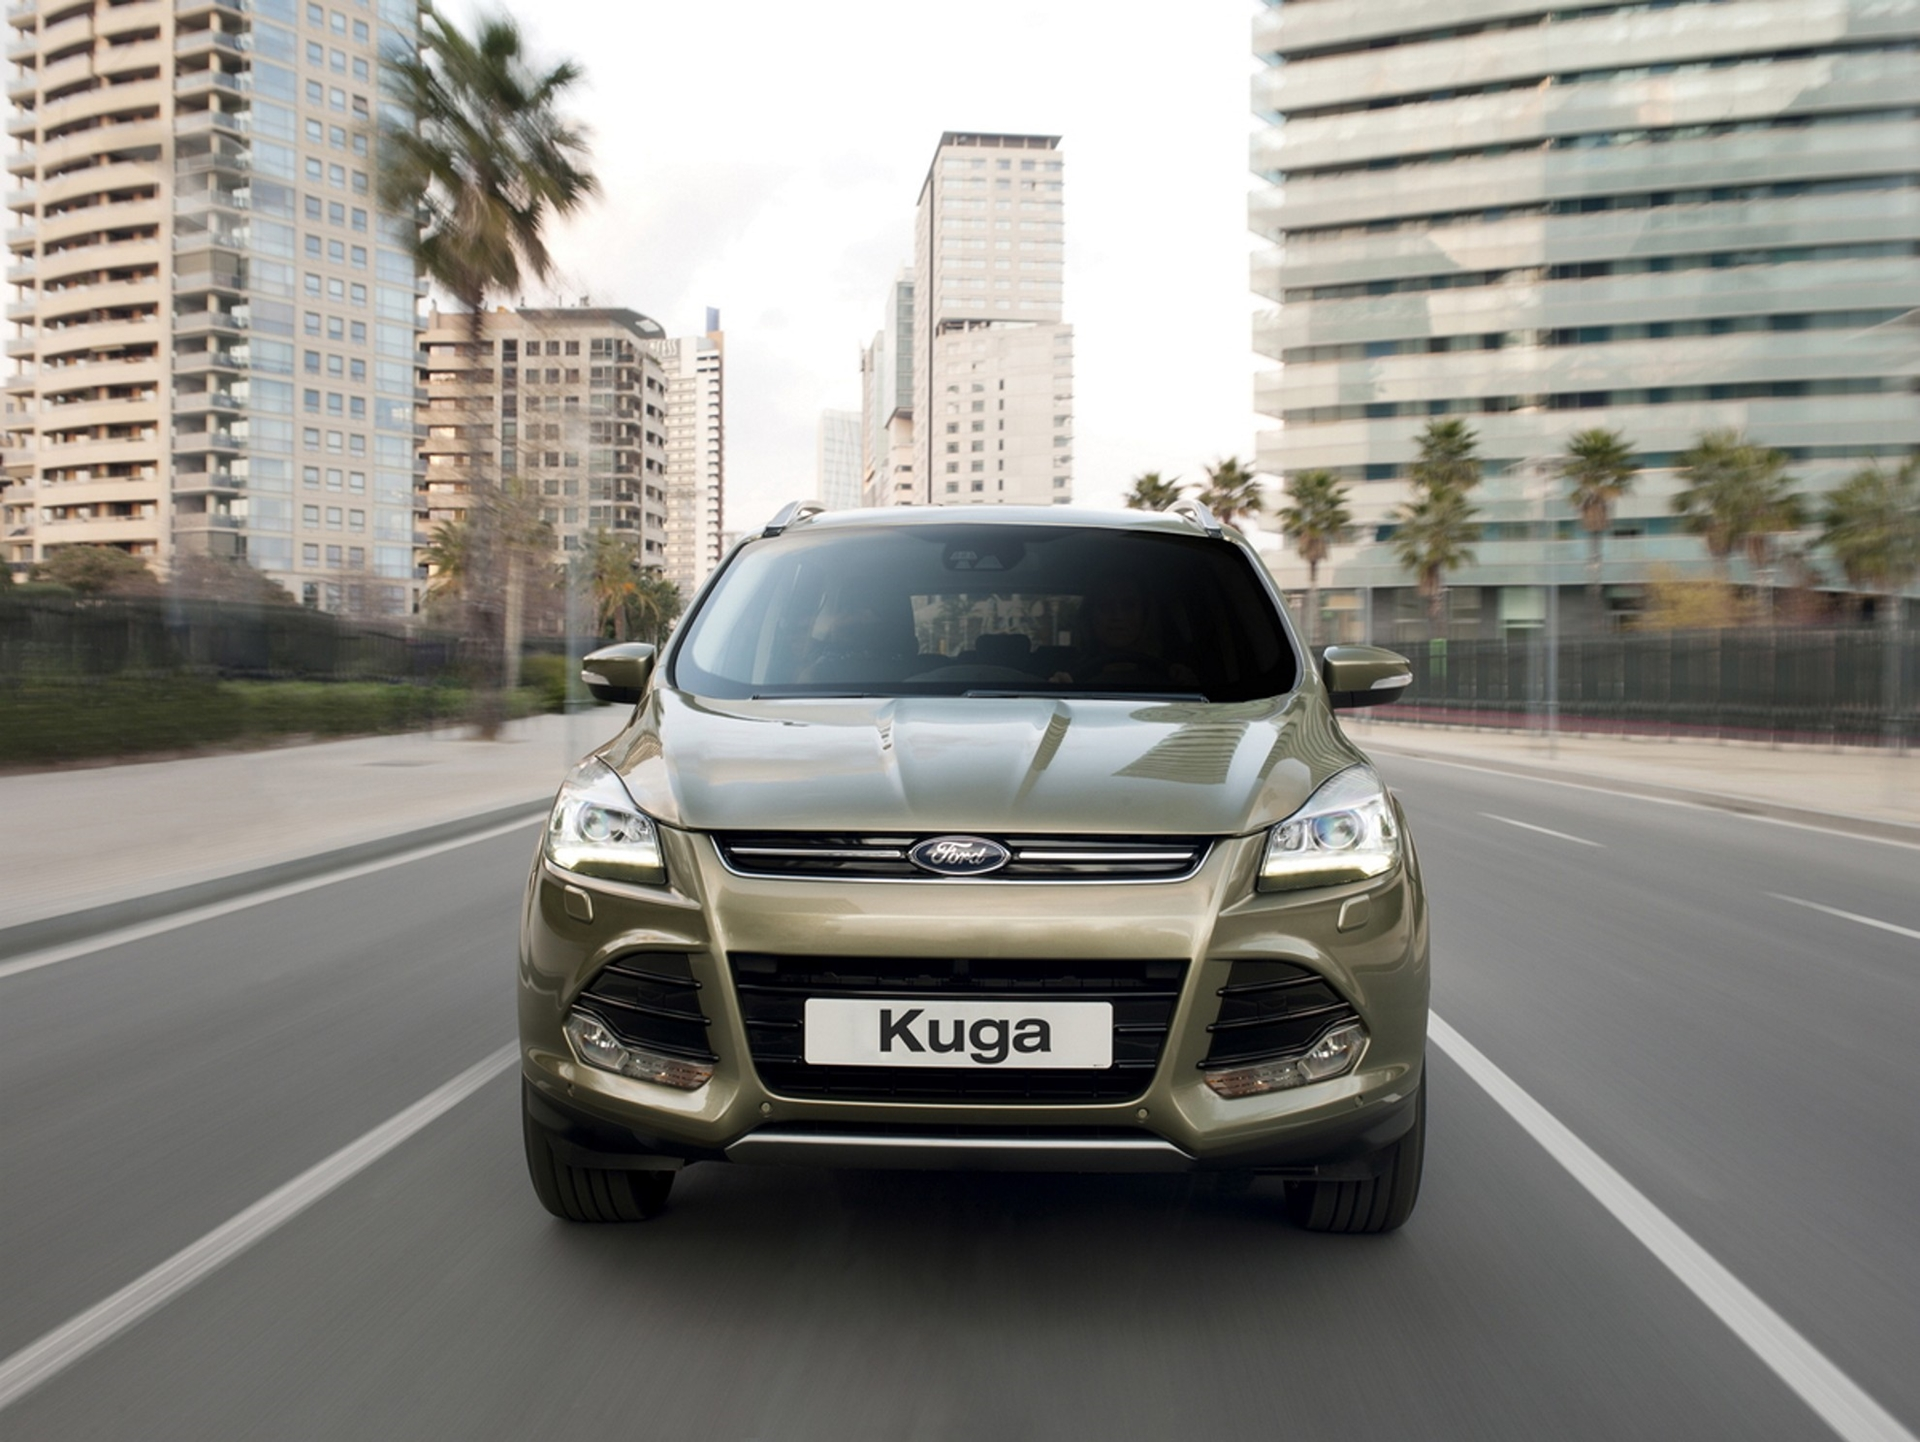 Ford Kuga South-Africa